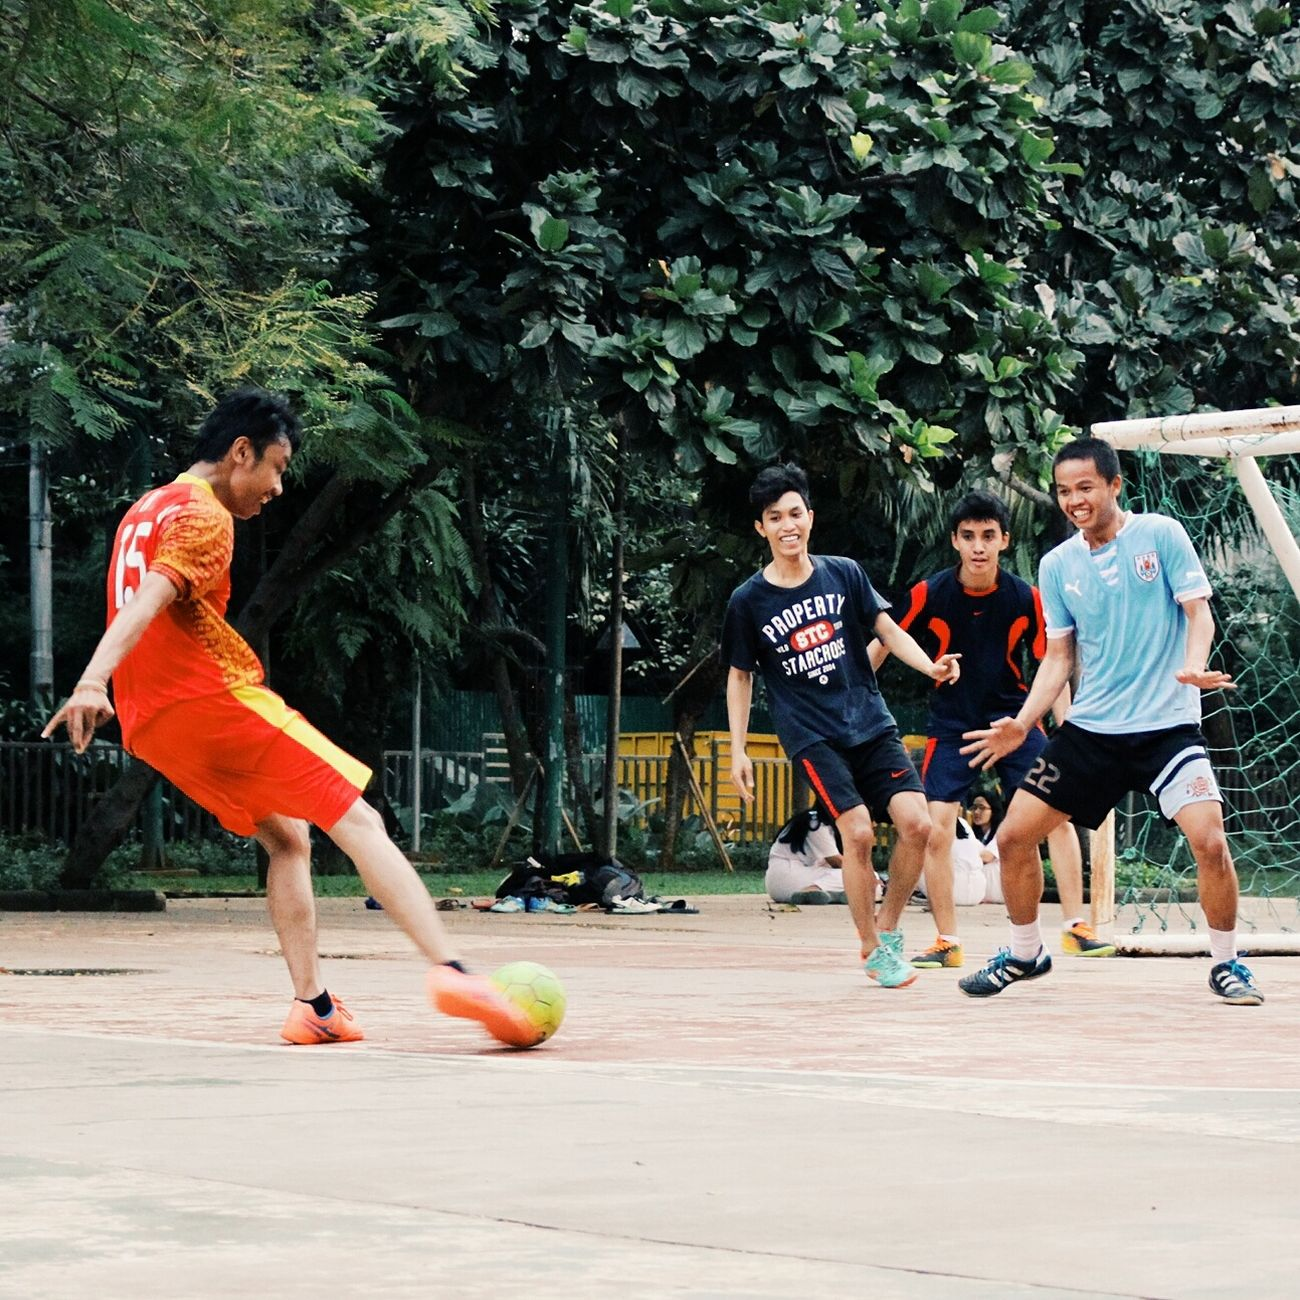 RePicture Team Futsal Team Sports Photography